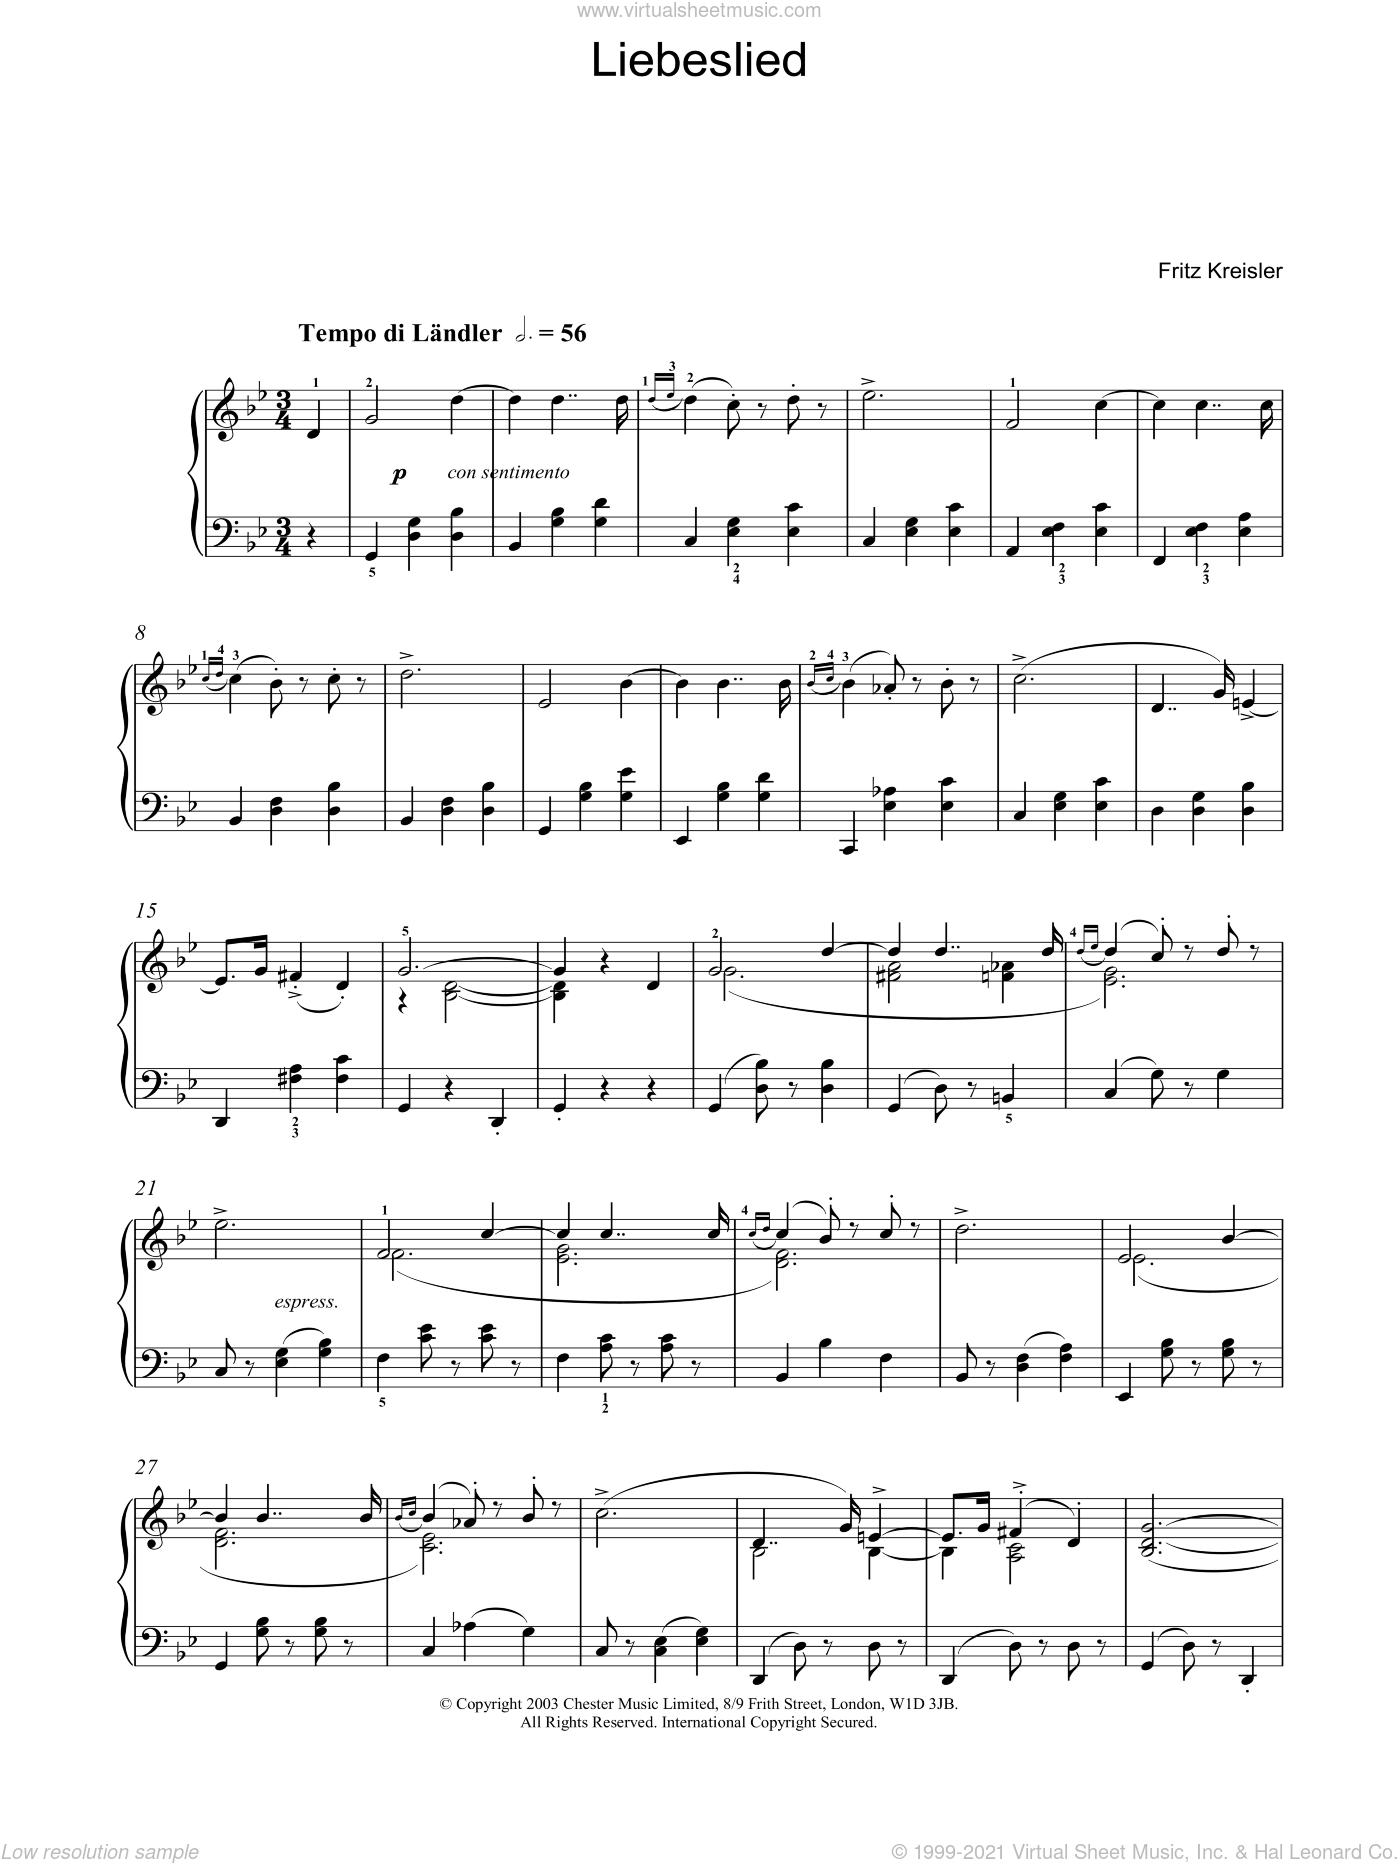 Liebeslied sheet music for piano solo by Fritz Kreisler, classical score, intermediate skill level